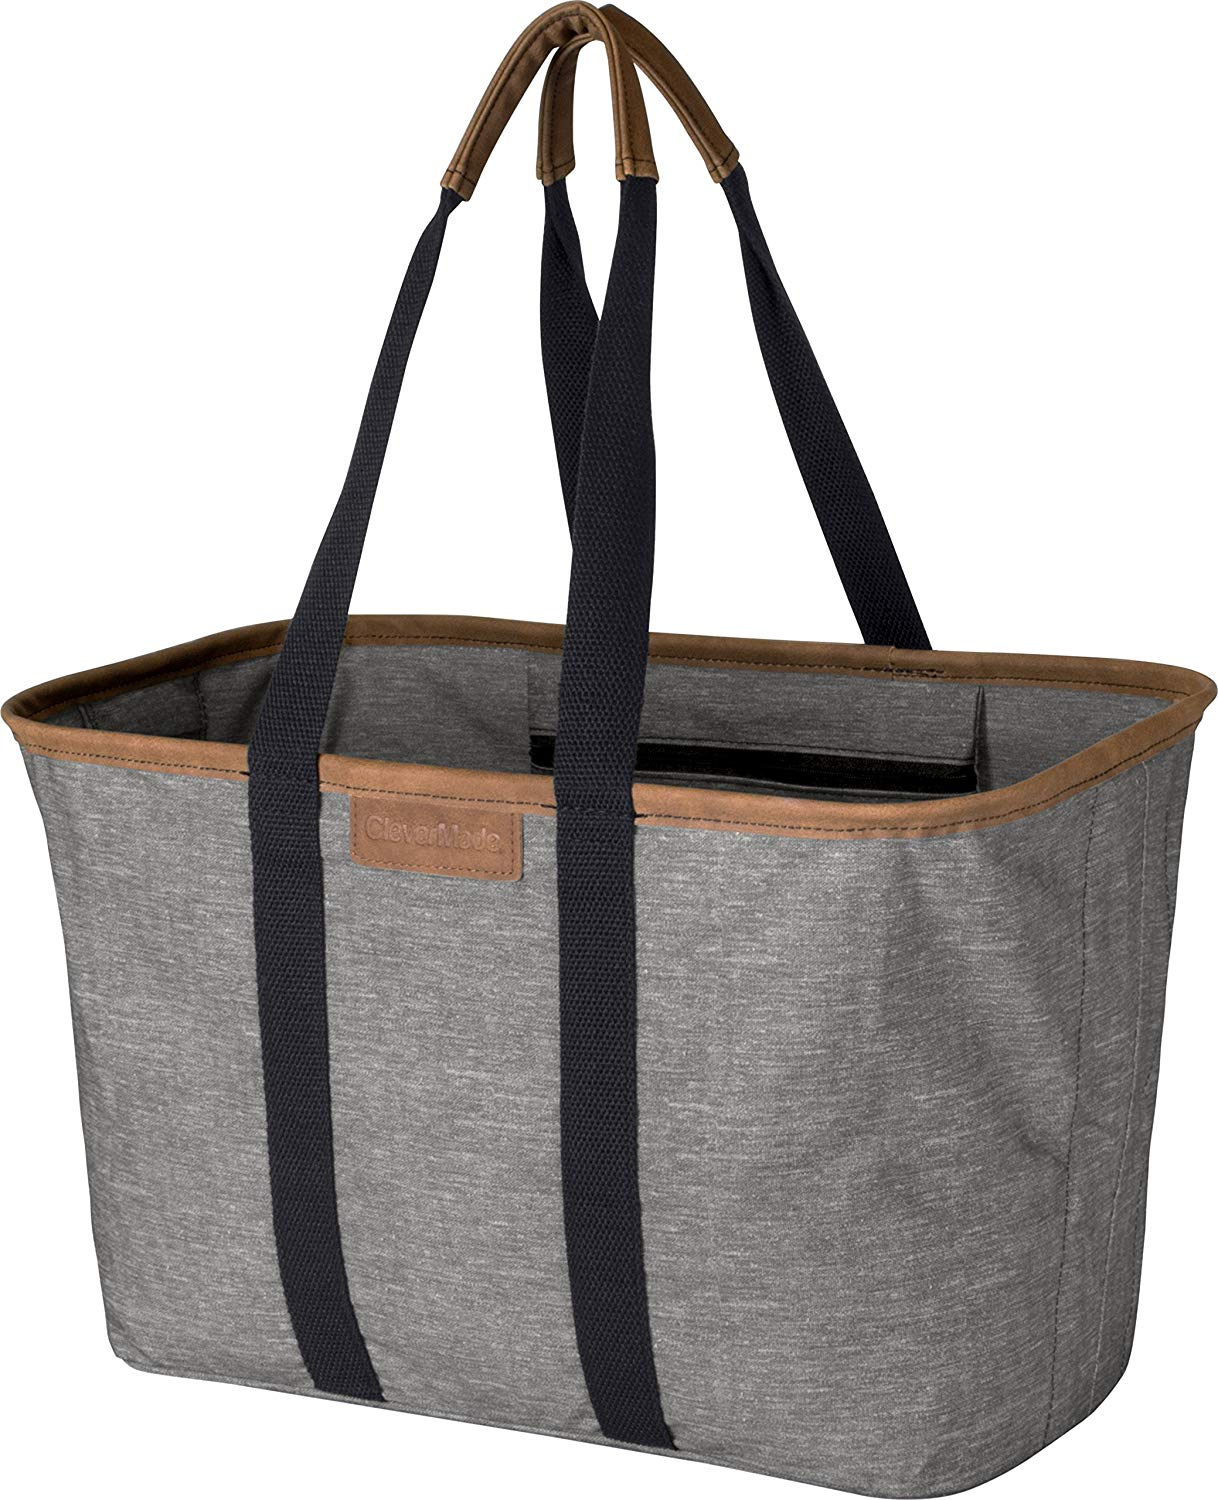 Clever made 30L snap basket luxe